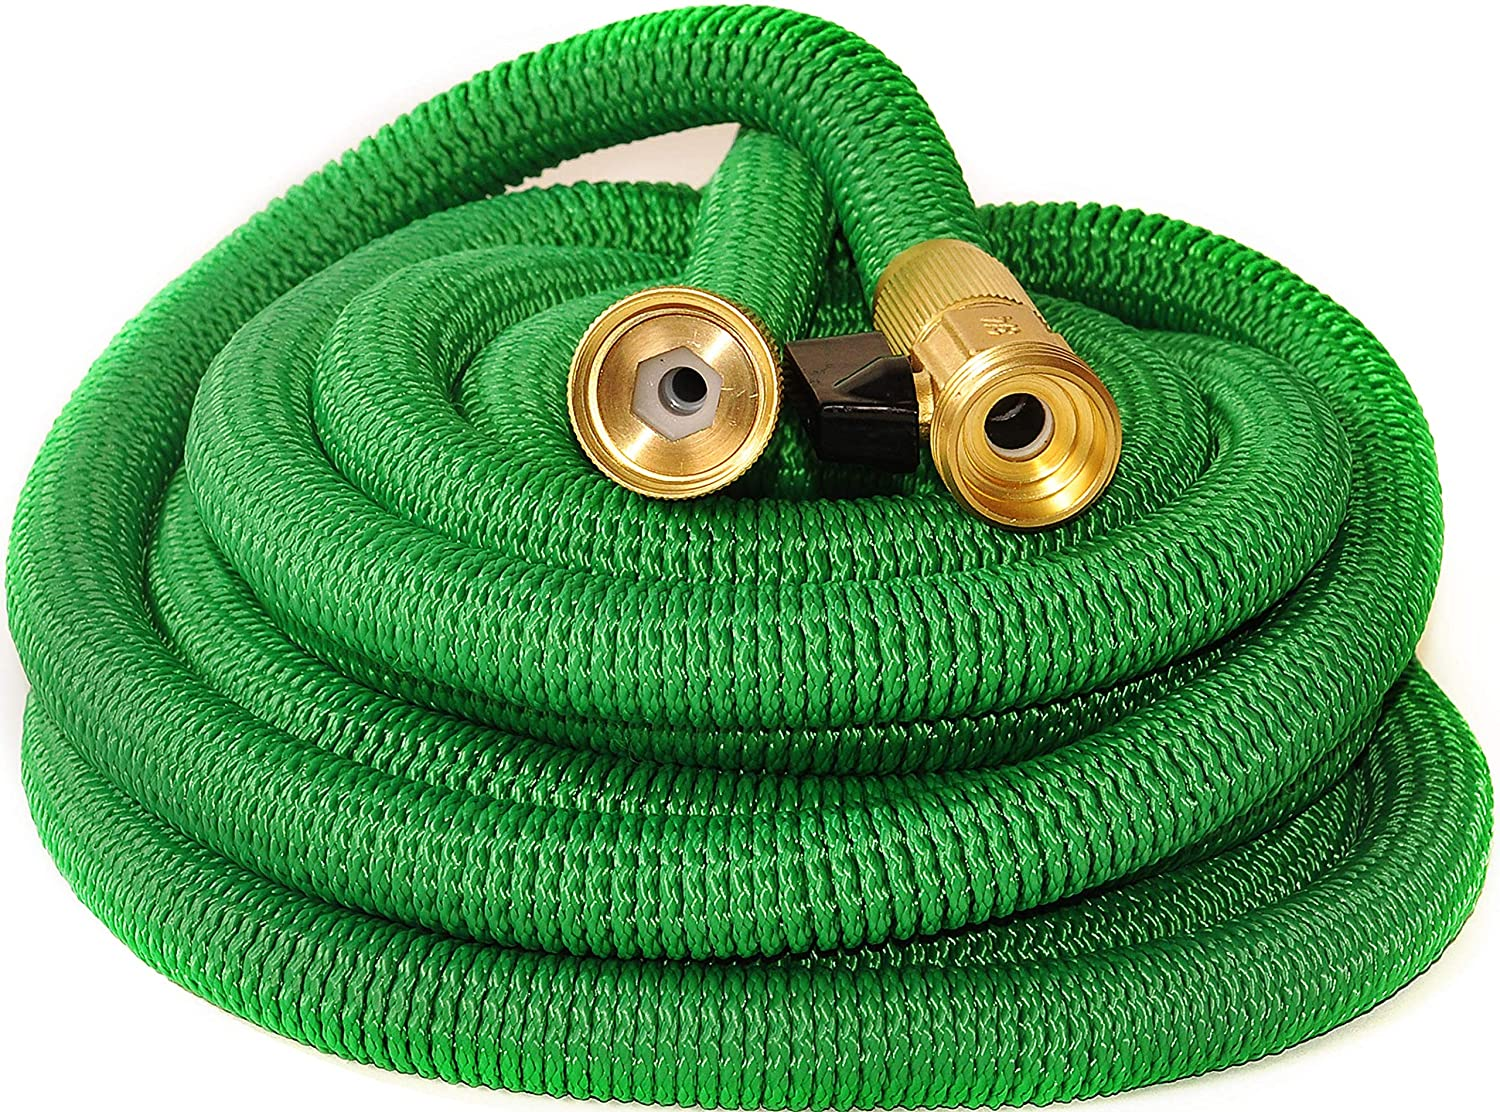 Riemex Expandable Hose Green 100 FT Heavy Duty Garden Water Hose - Triple Latex - Expanding Solid Brass Metal Fittings Connectors, Flexible Strongest - for All Watering Needs Green 100FT